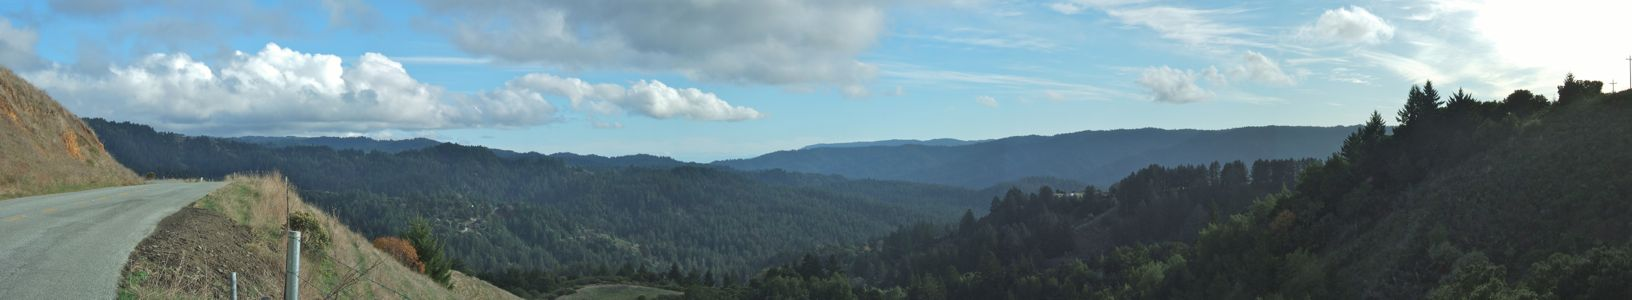 View from Alpine Road - 11/2011